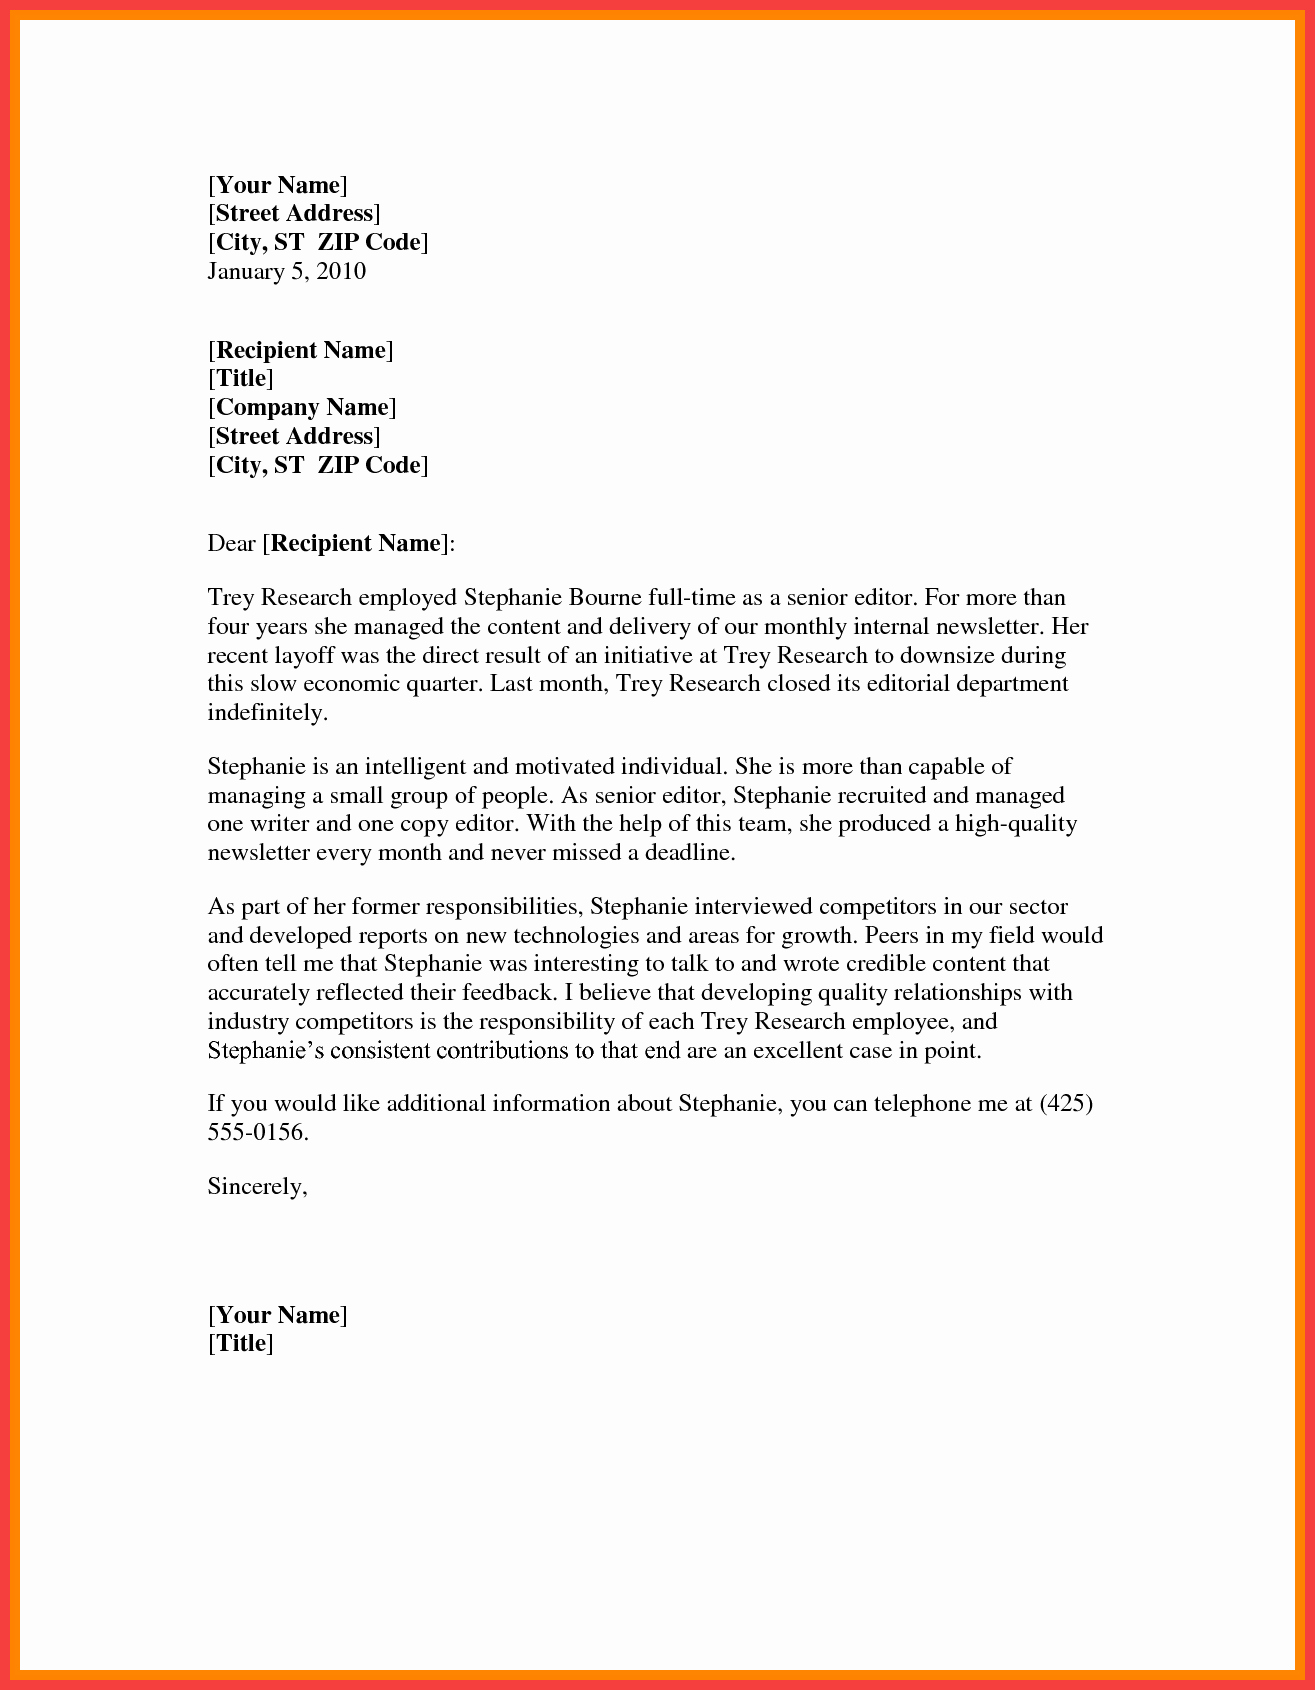 Letter Of Recommendation Word Template New Word formal Letter Template